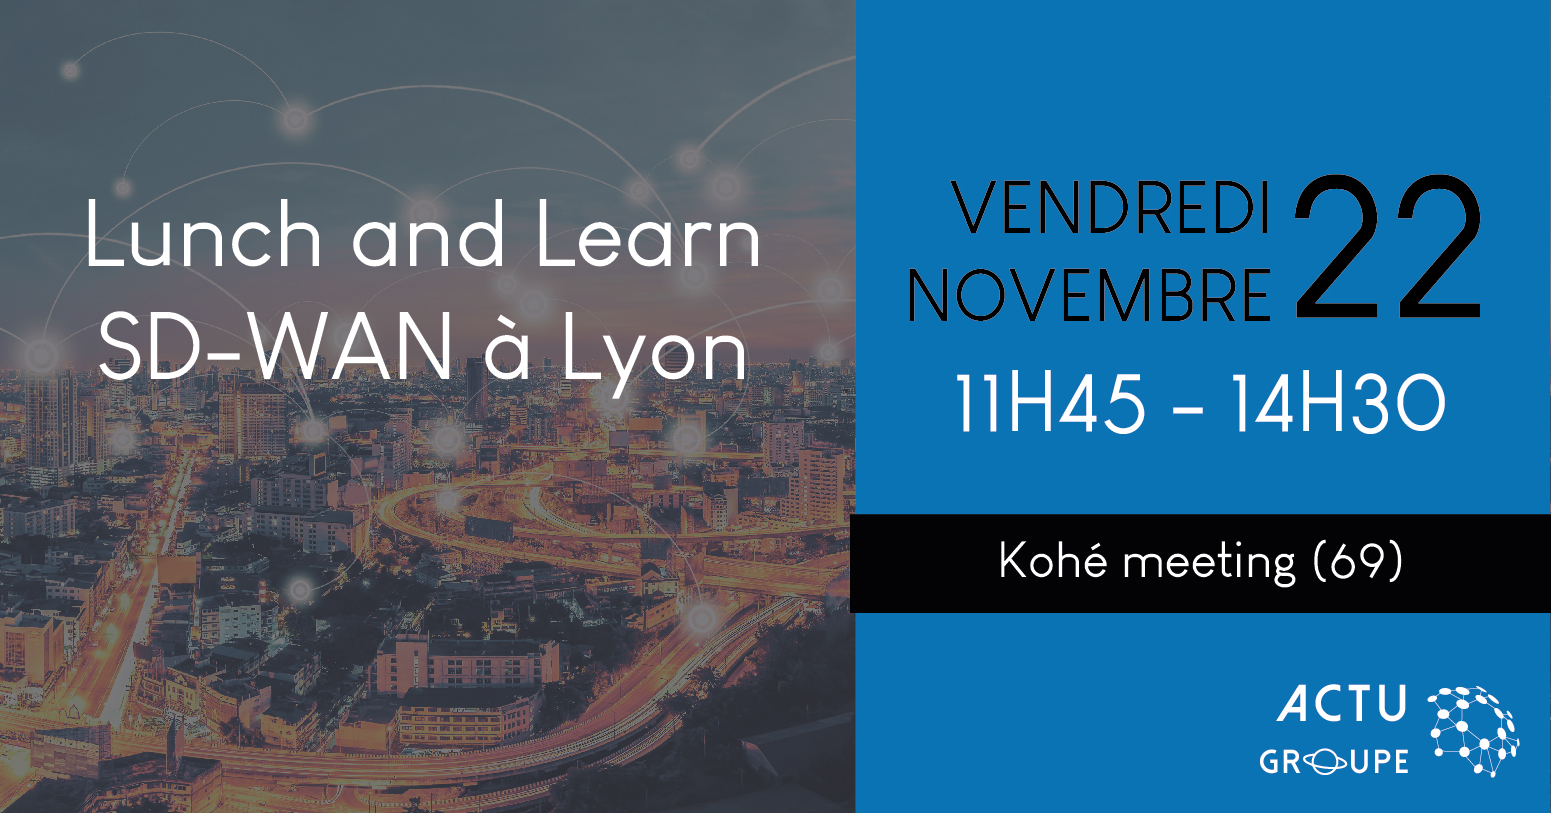 lunch and learn lyon sdwan actu groupe-04